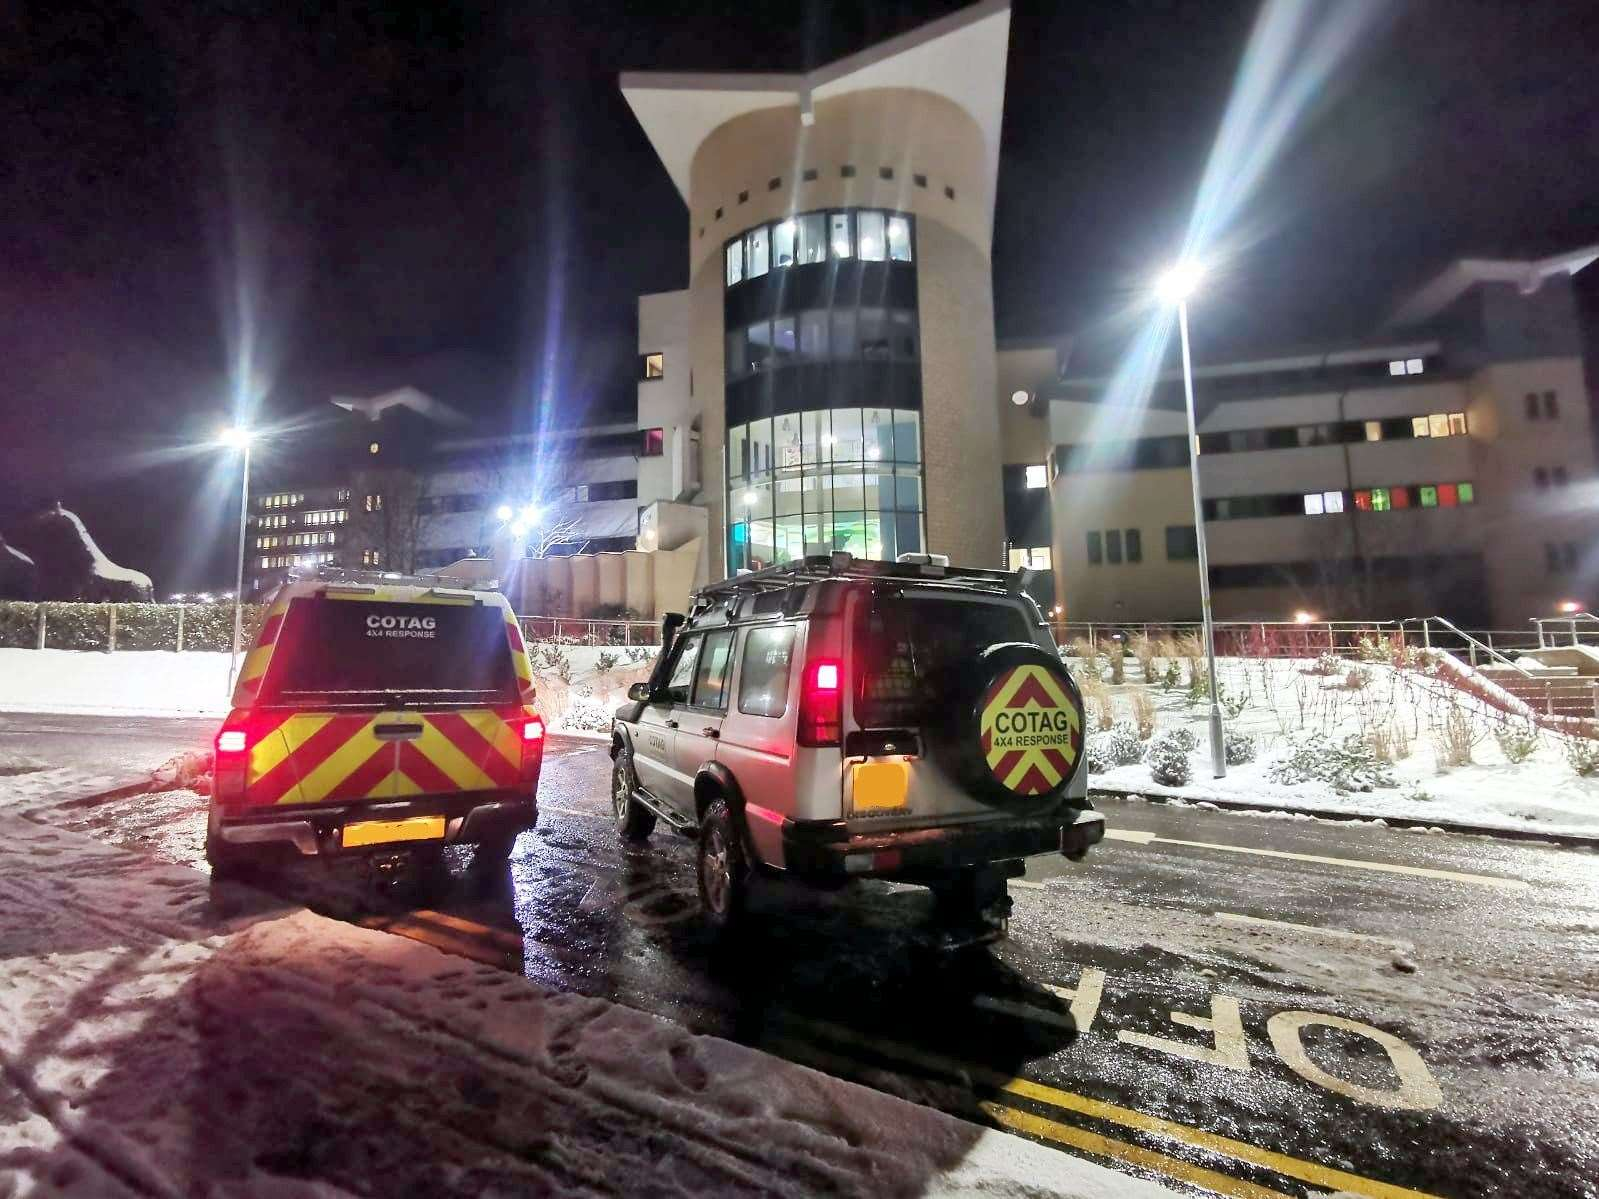 COTAG 4x4 Response has been transporting key NHS personnel to and from both Aberdeen Royal Infirmary and Dr Gray's Hospital in Elgin.